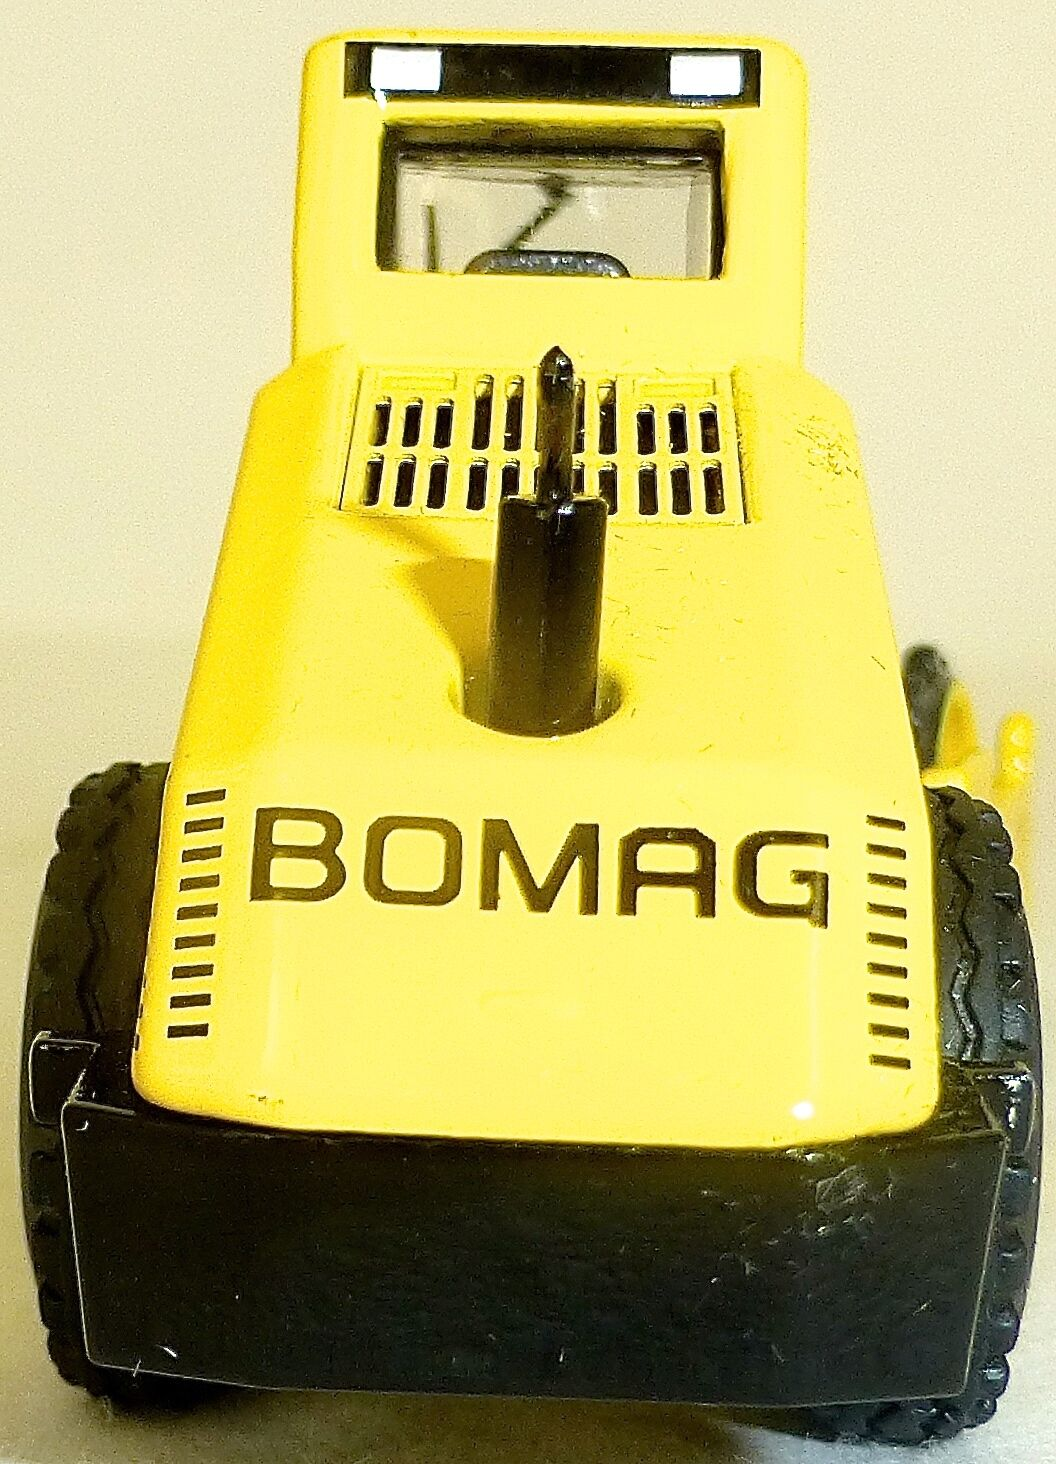 Bomag Bomag Bomag BW213 PDH-3 Road Roller Yellow Nzg 4753 Metal Collection 1 87 Ovp Ll1 Μ   a99426